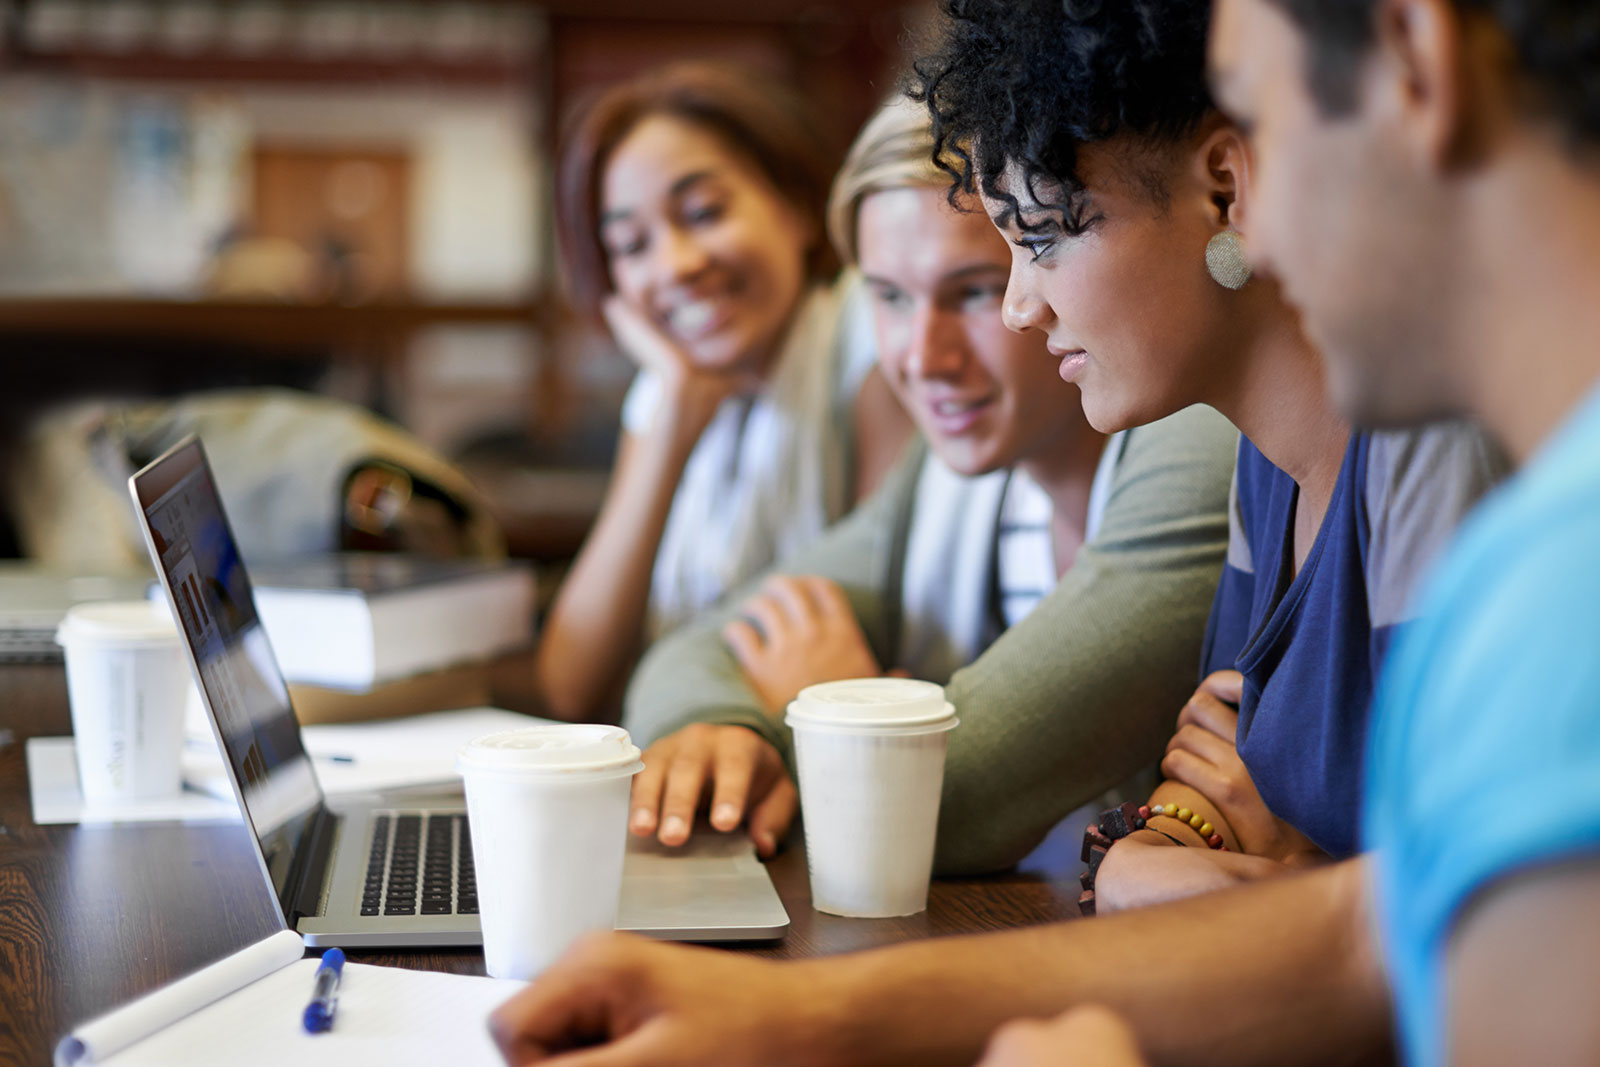 The Essential Guide to Using Content to Recruit Students